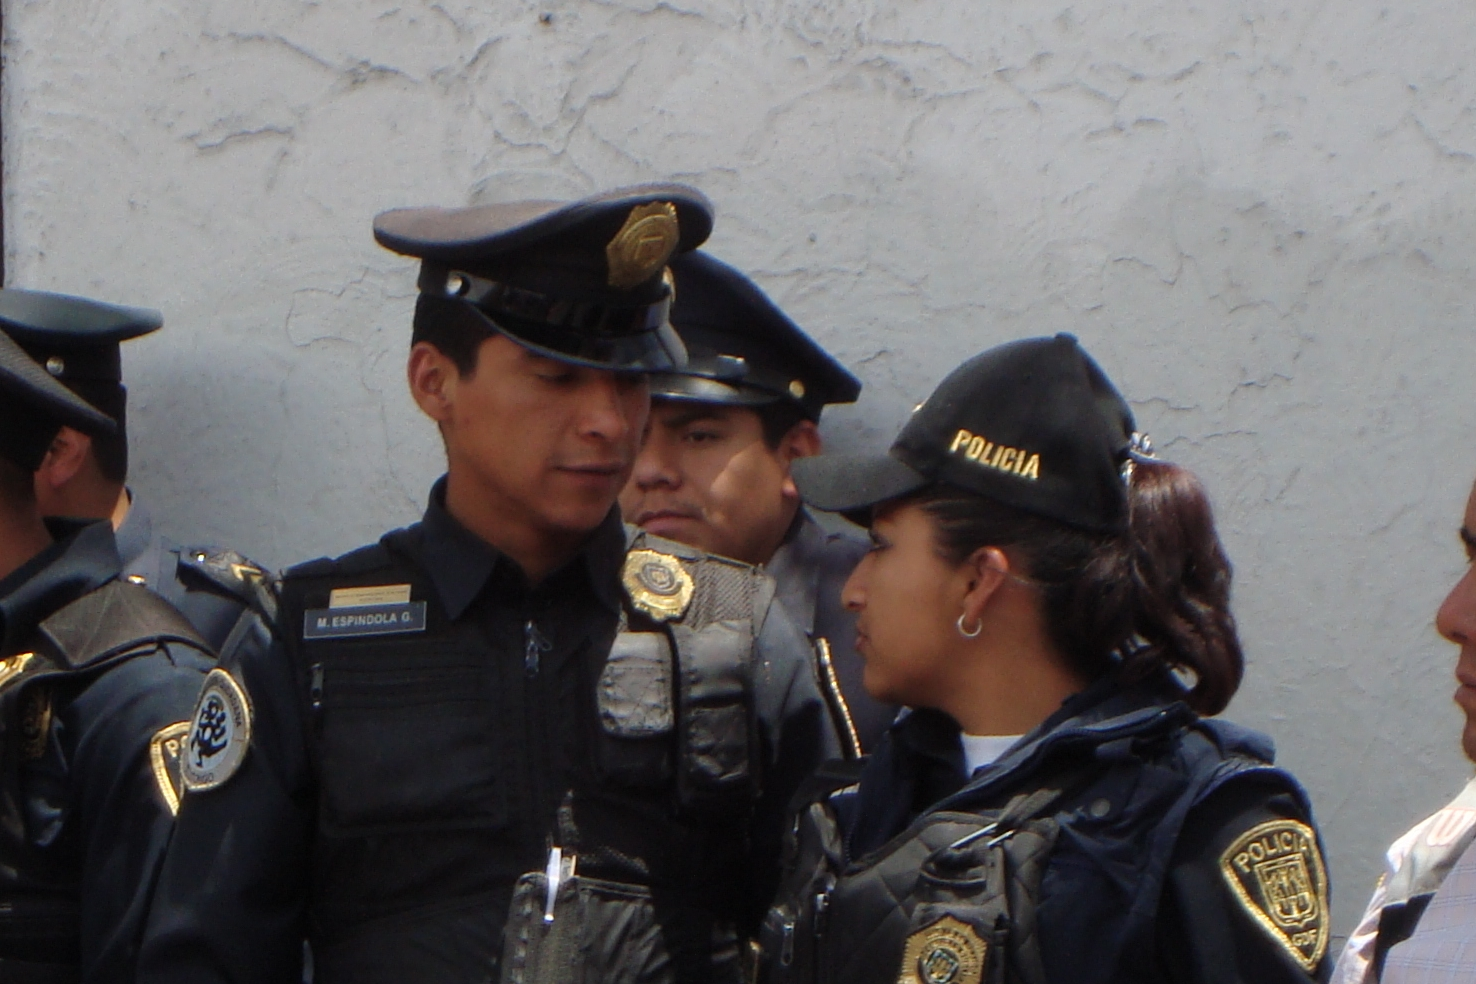 police in airport